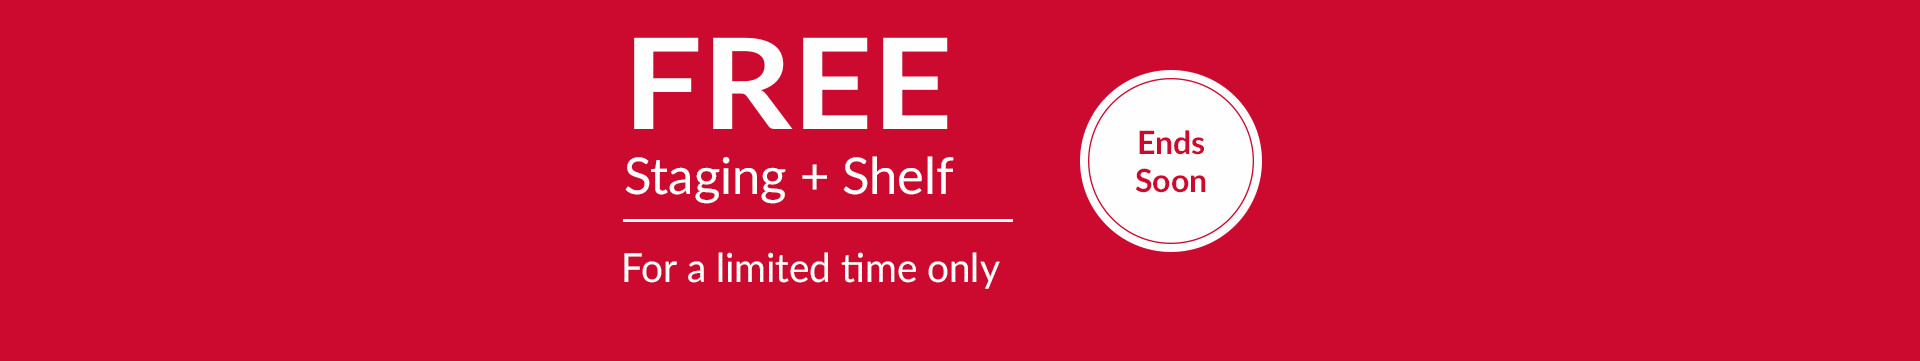 Free staging offer